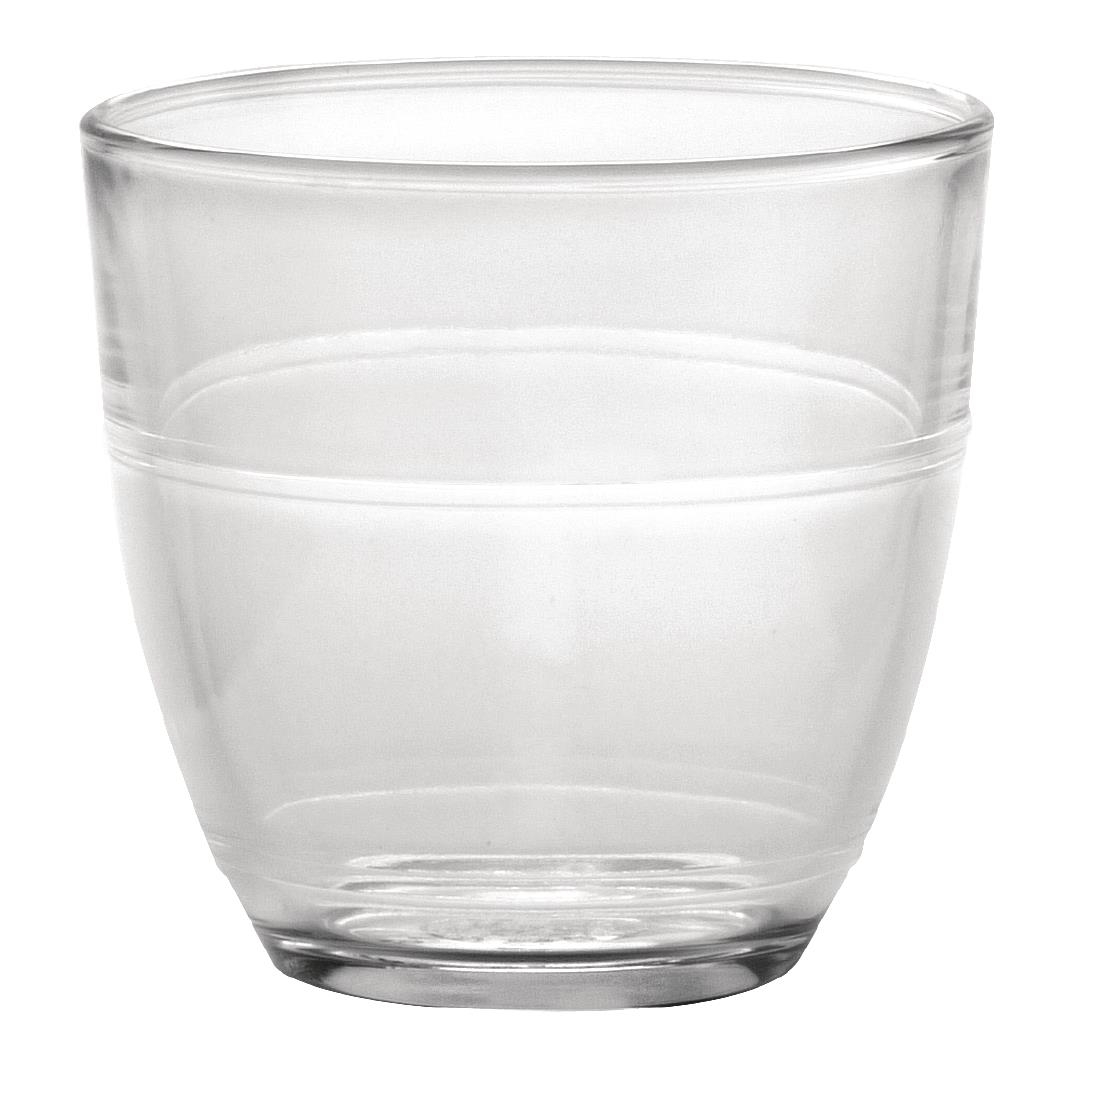 Image of Duralex Gigogne Tumblers 220ml (Pack of 6) Pack of 6